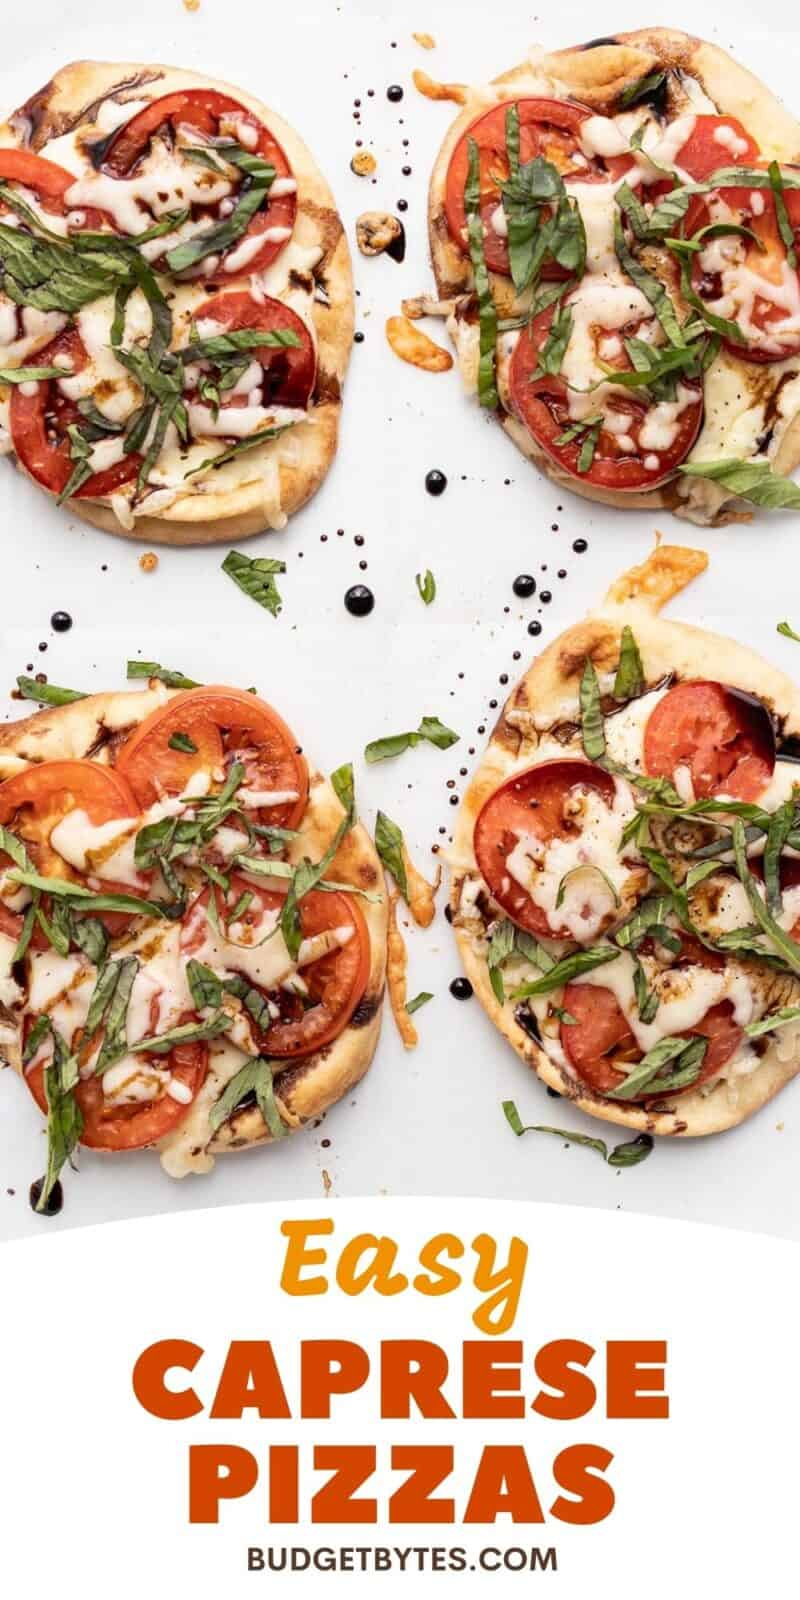 Four Caprese Pizzas with title text at the bottom